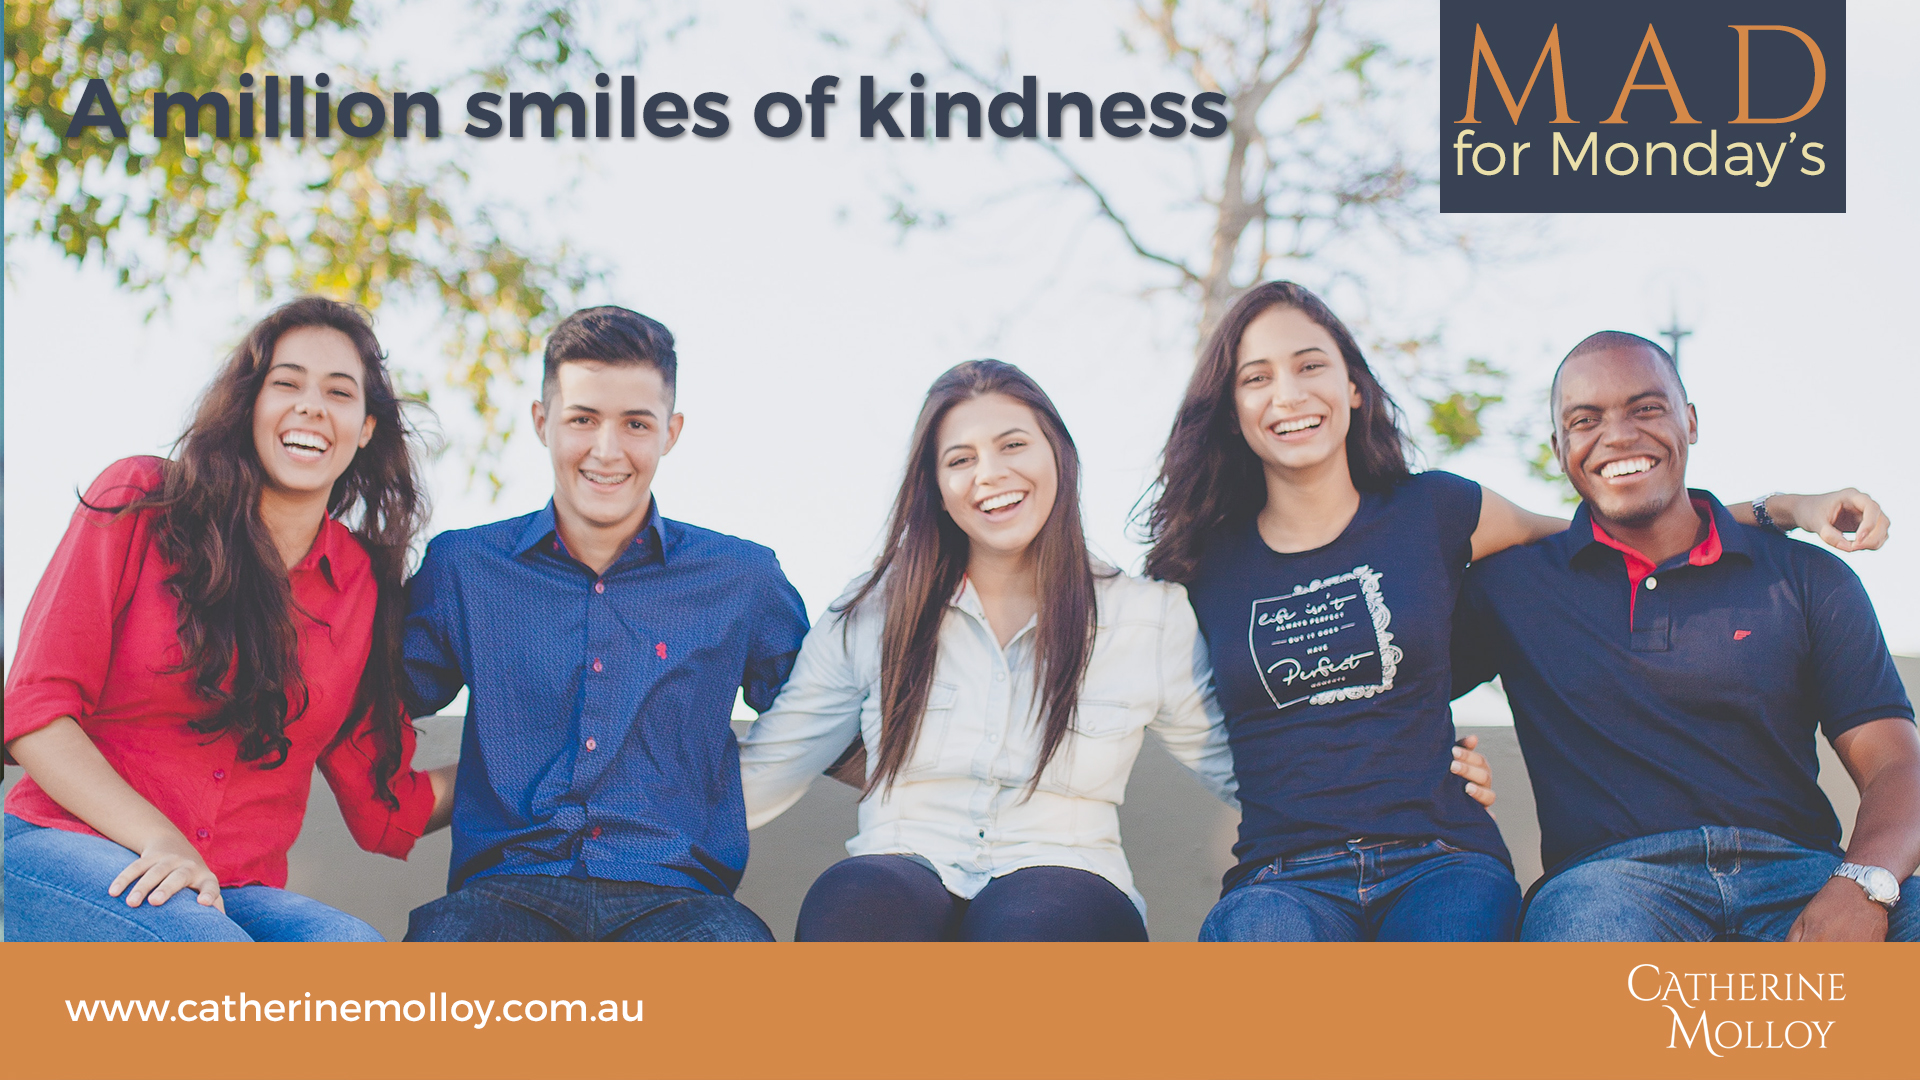 MAD for Monday's – A million smiles of kindness